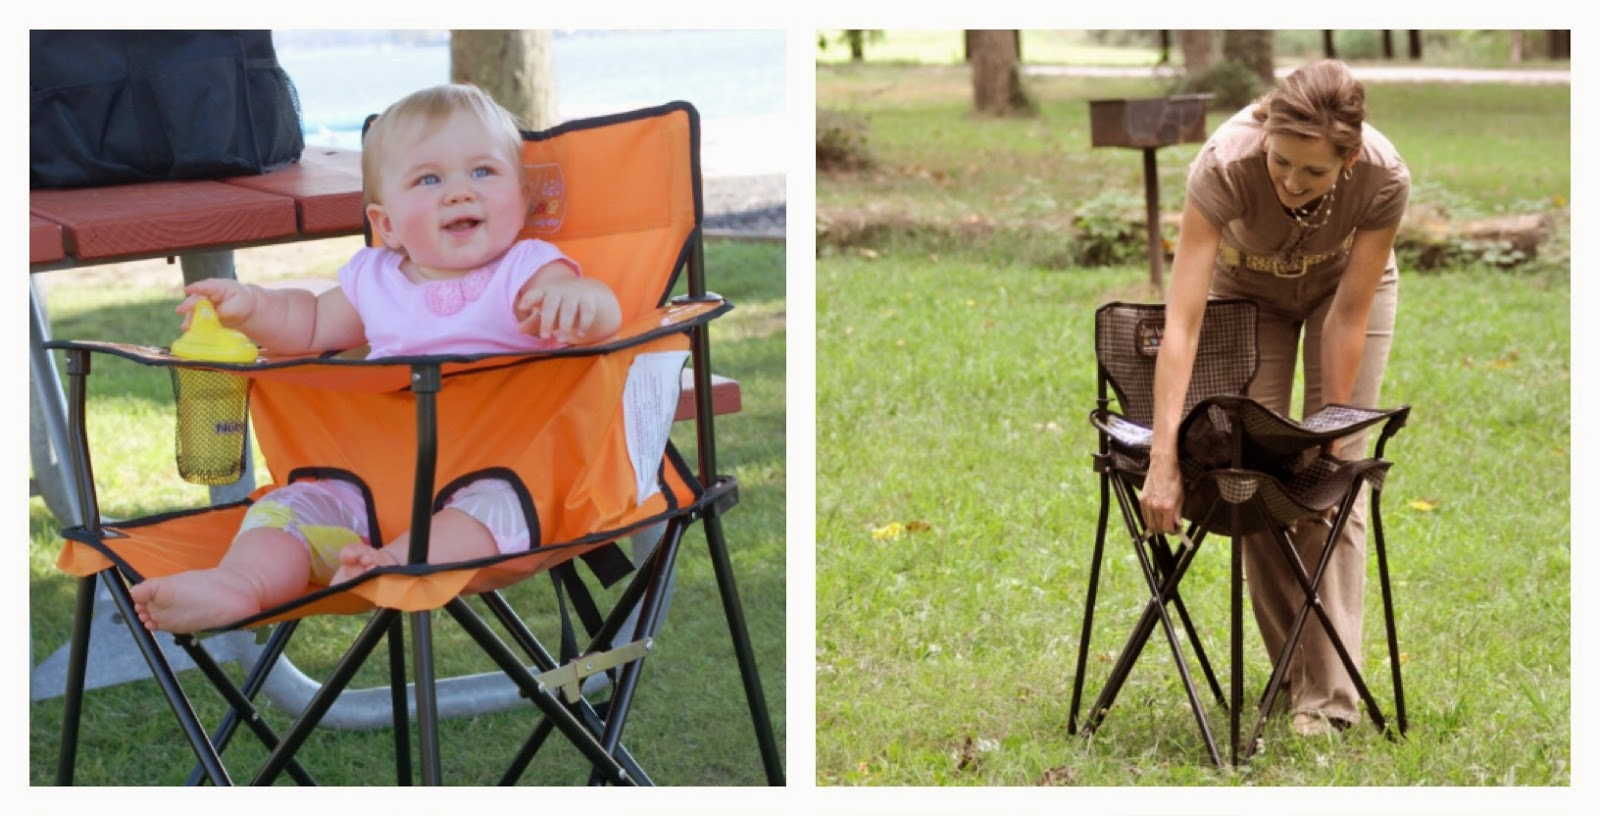 the chair unfolds easily locks into place and folds up in just seconds - Ciao Portable High Chair